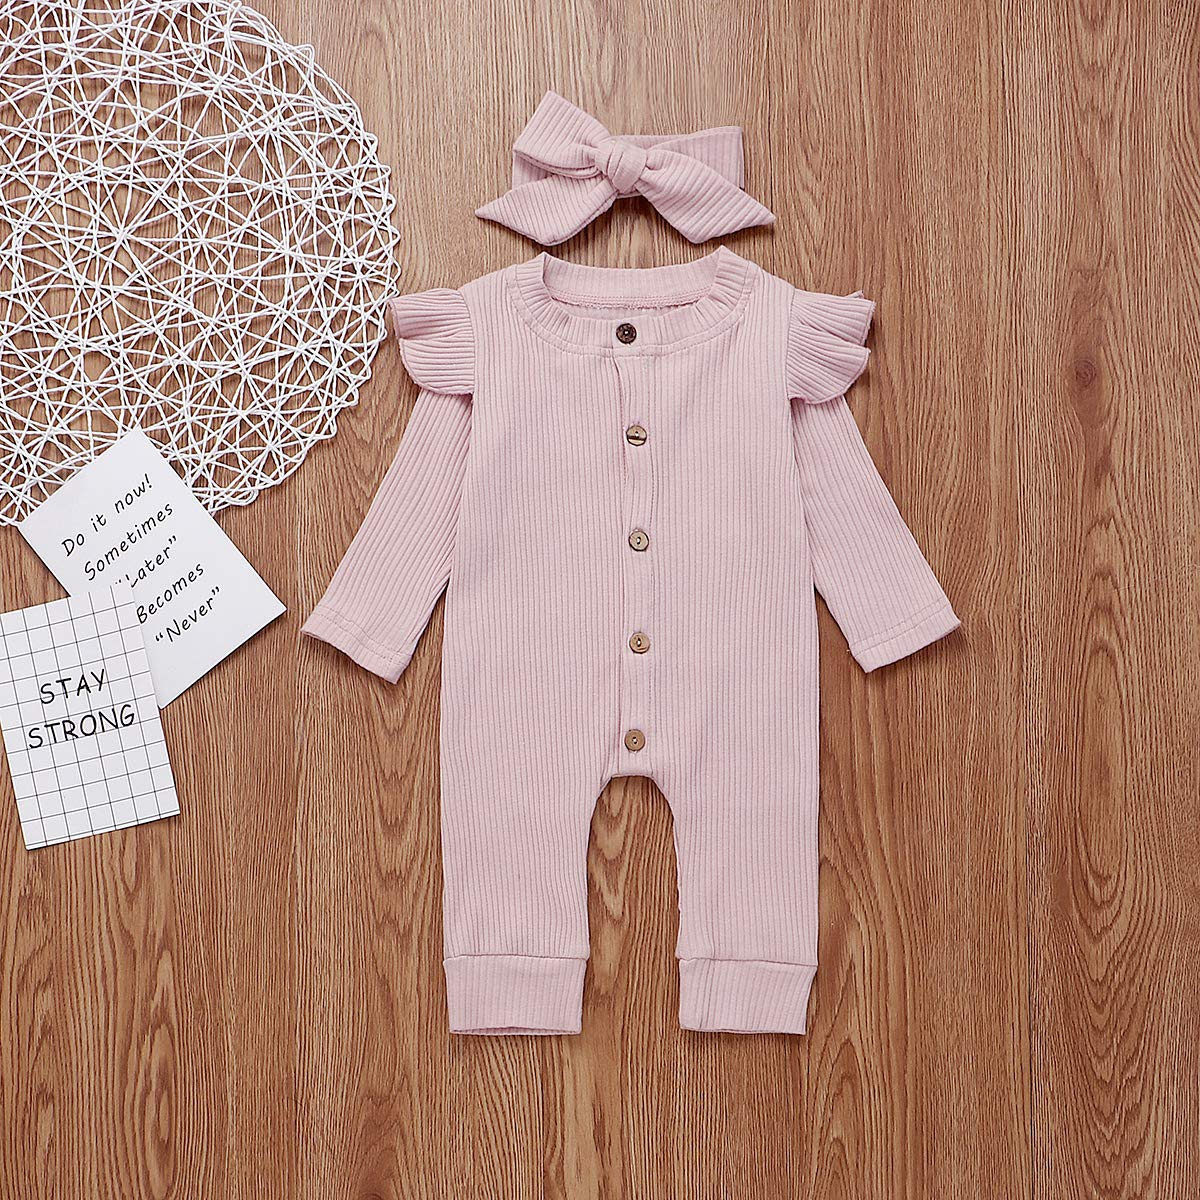 2PCS Newborn Baby Girls Romper Infant Long Sleeve Bodysuit Jumpsuit Ruffle Long Sleeves Bodysuit Button Down Coverall Autumn Winter Outfits